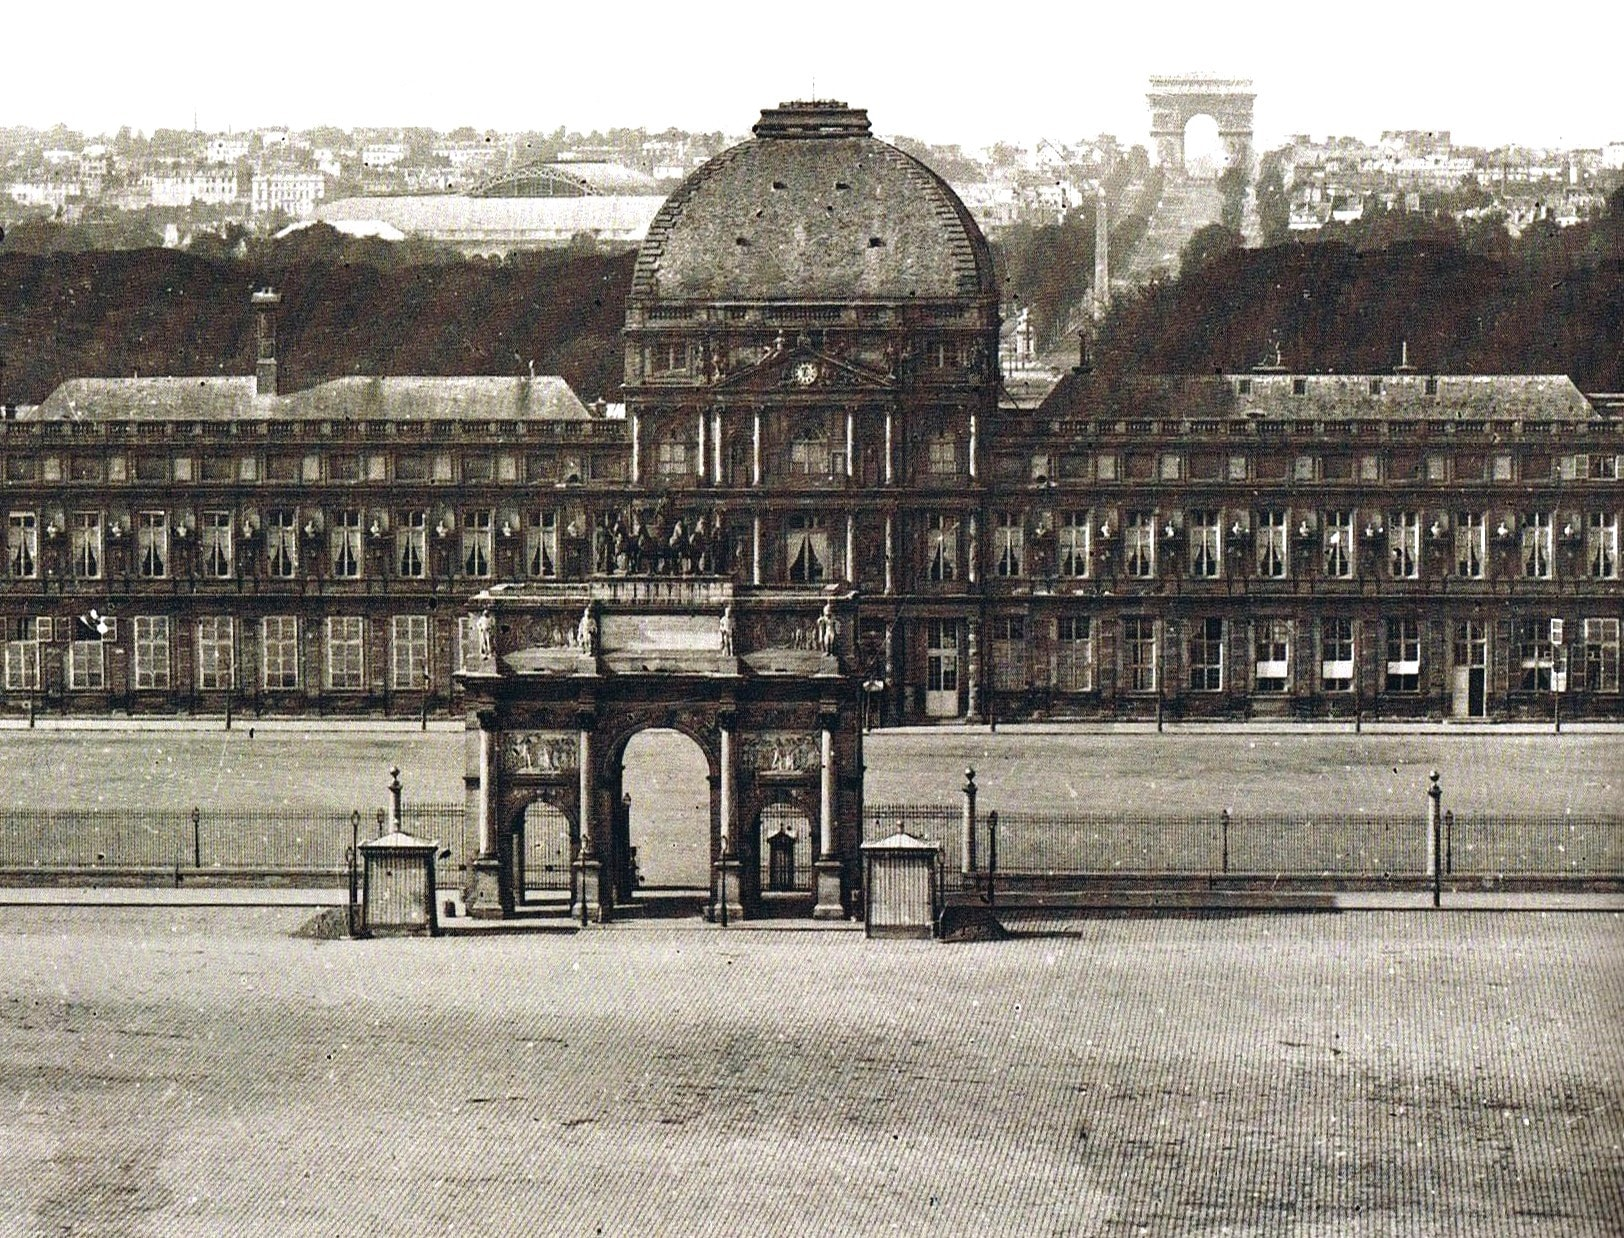 Tuileries Palace — Paris, France: Tuileries Palace was built as a royal residence in 1564 as commissioned by Catherine de Médici, queen consort of Henry II of France. The palace was destroyed in 1871 due to arson.